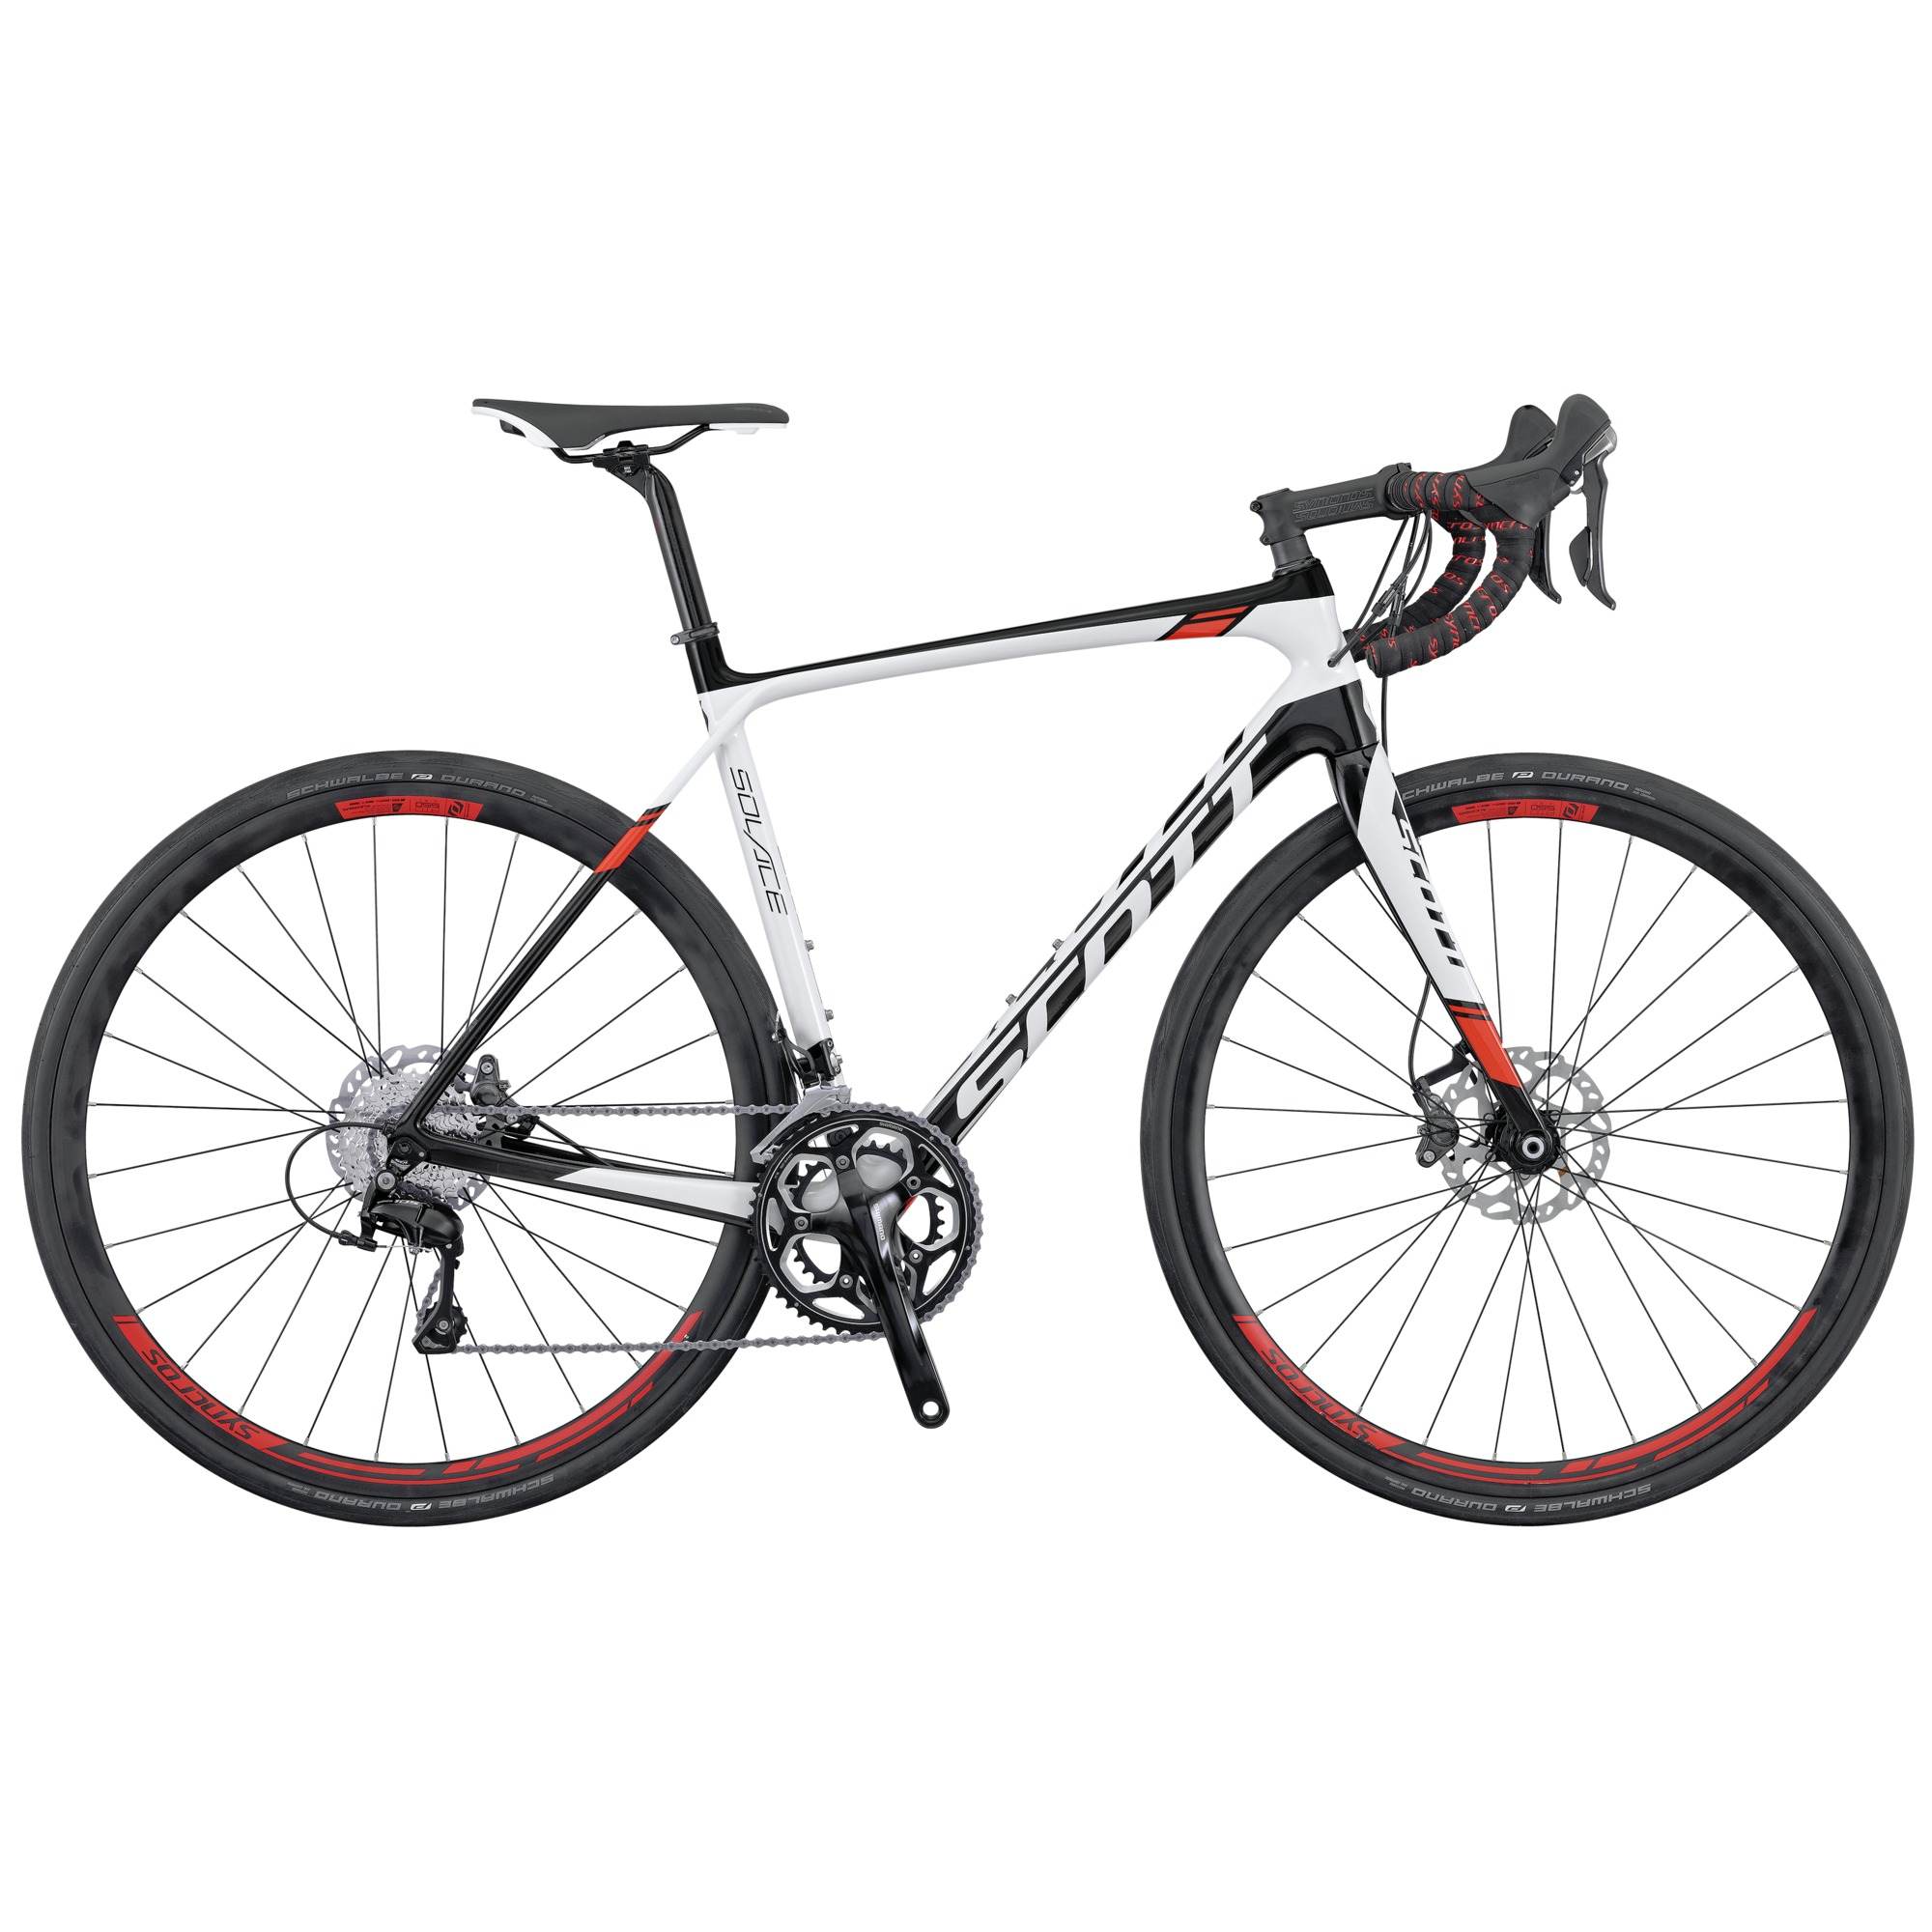 The Best Road Bike Reviews Of 2018